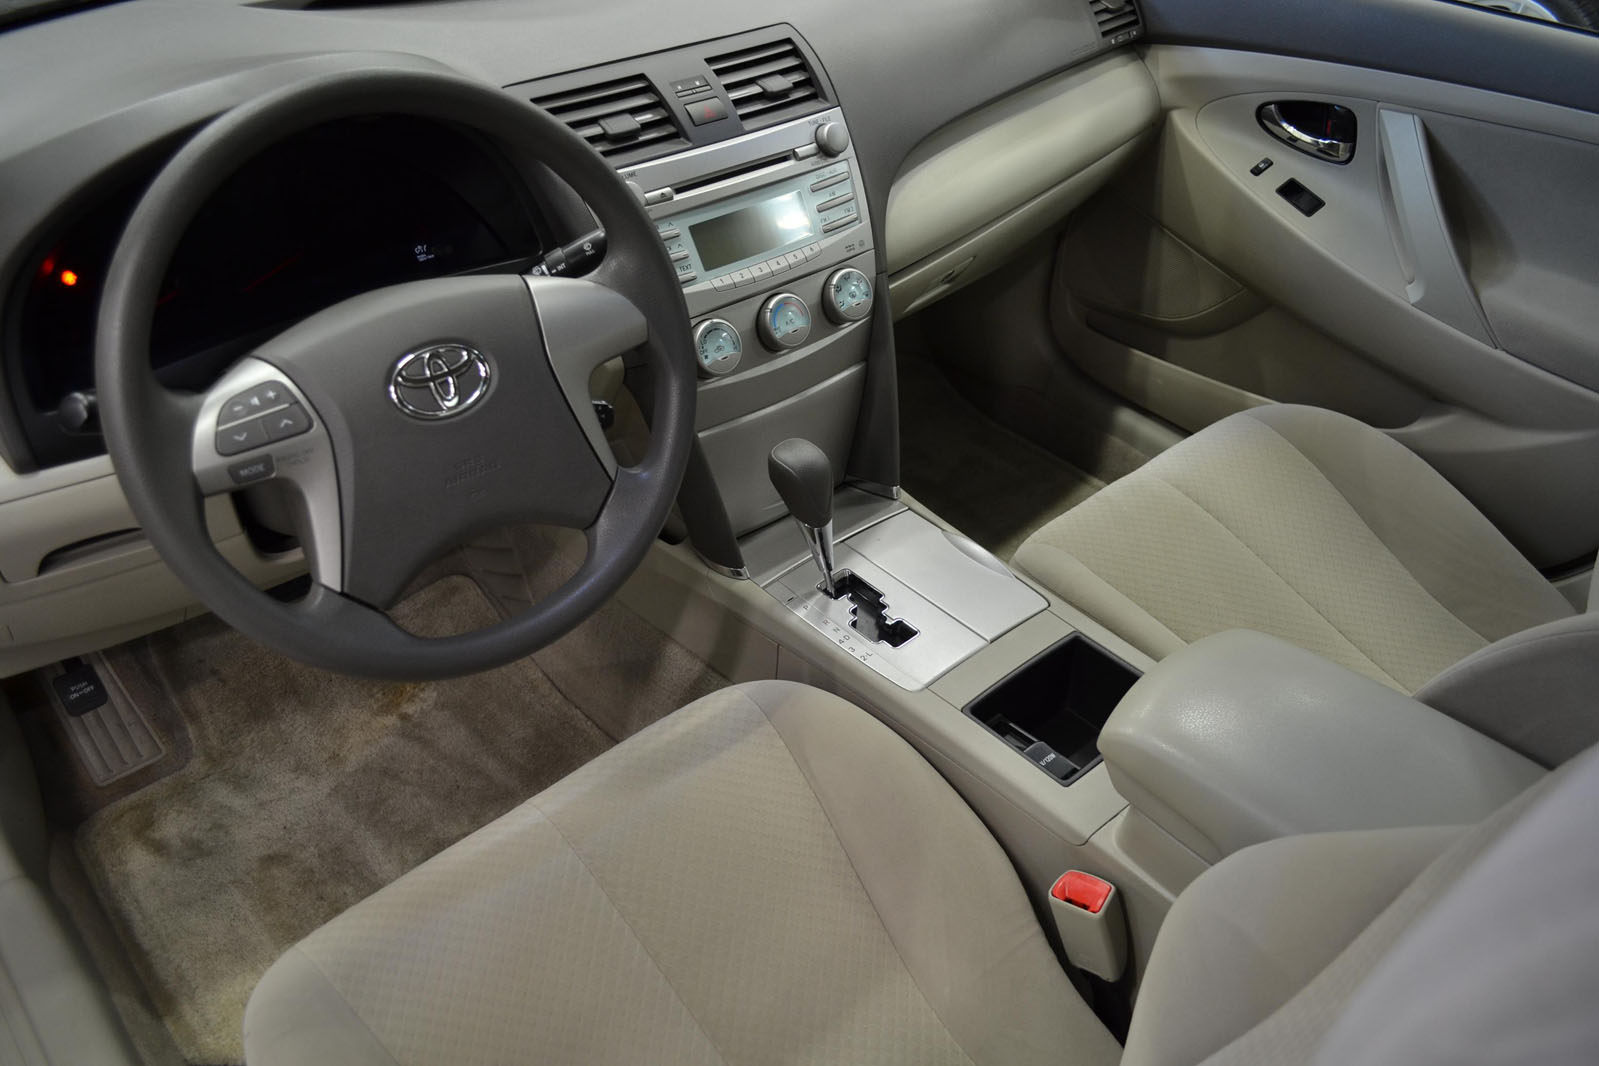 Charming 2007 Toyota Camry Interior Colors Ideas - Simple Design ...